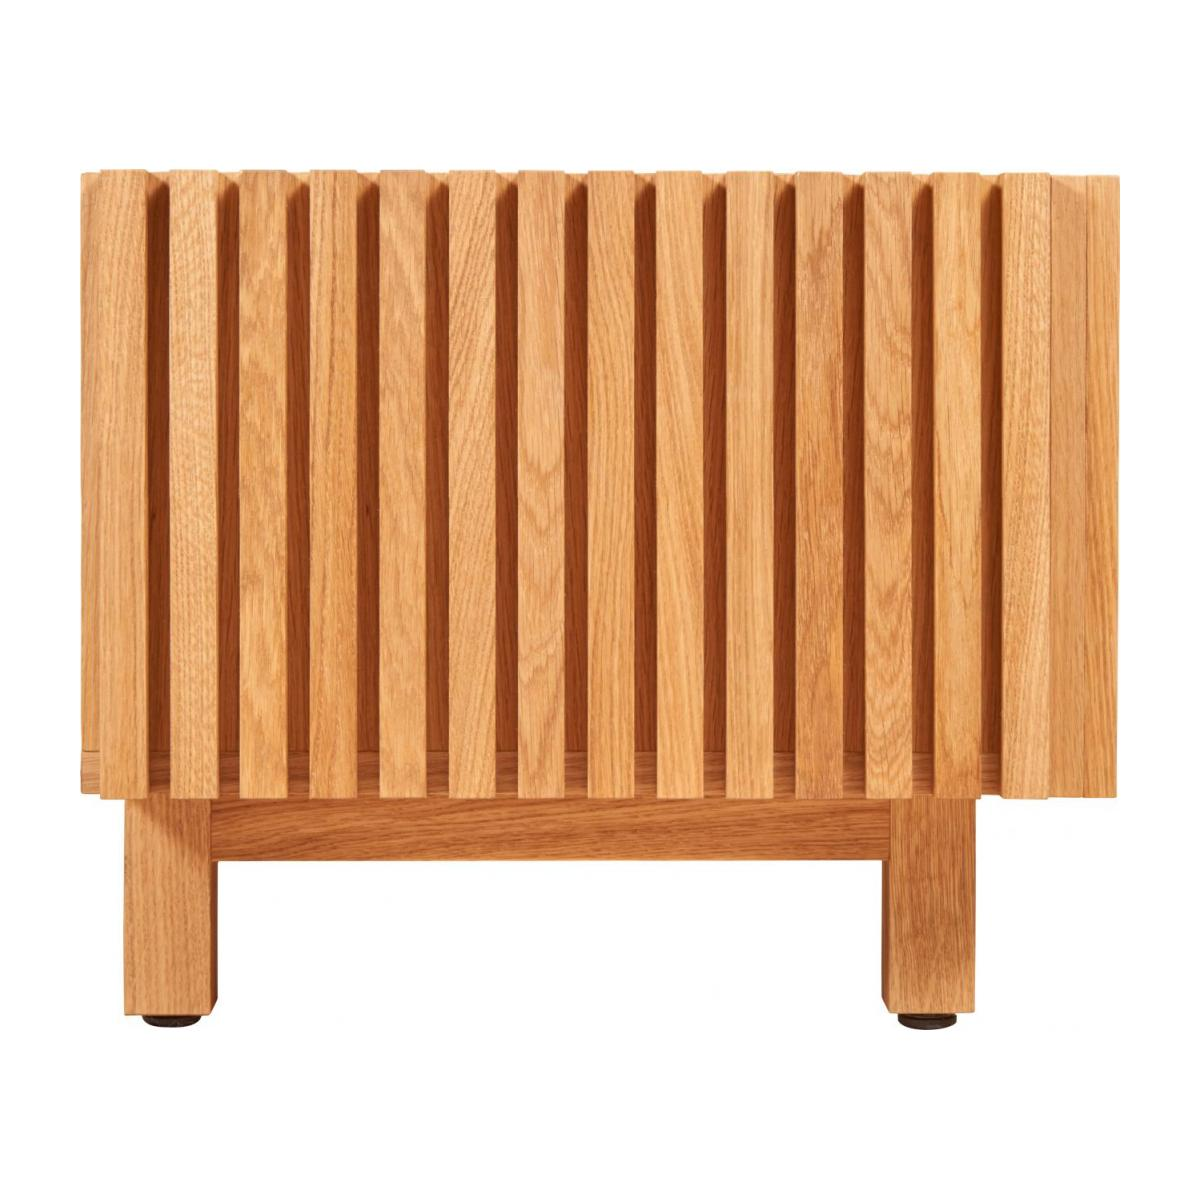 Audio video oak stand n°7